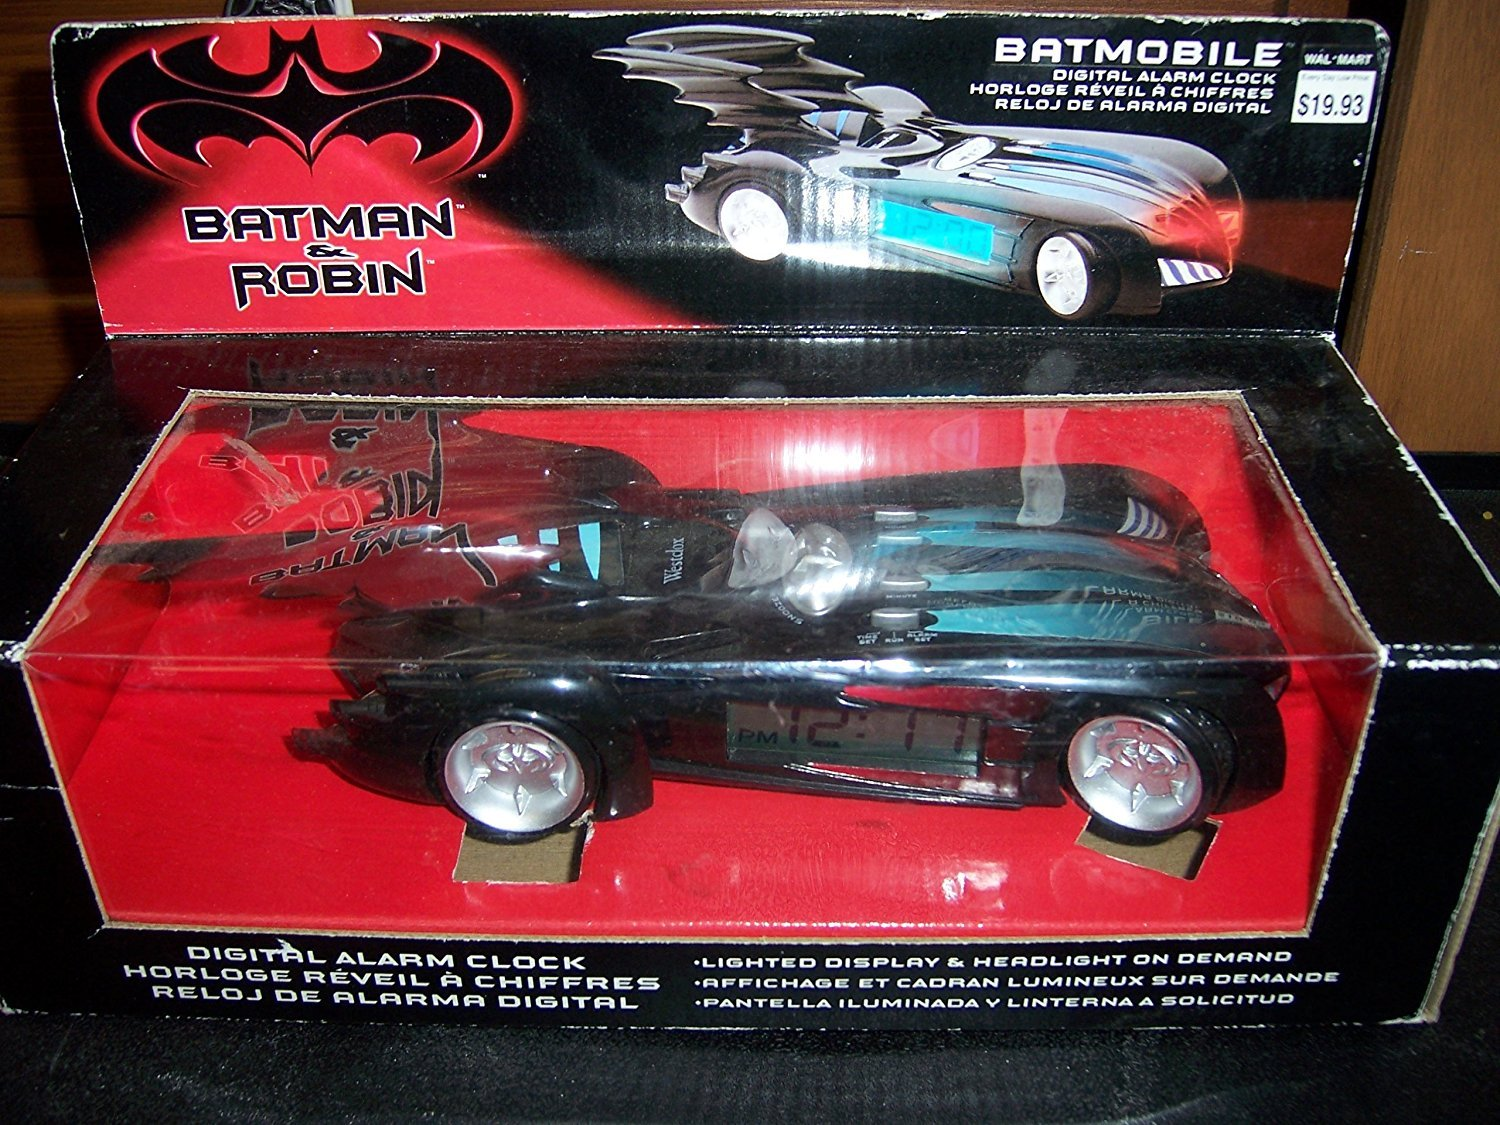 Amazon.com: Batman & Robin Batmobile Digital Alarm Clock: Health ...